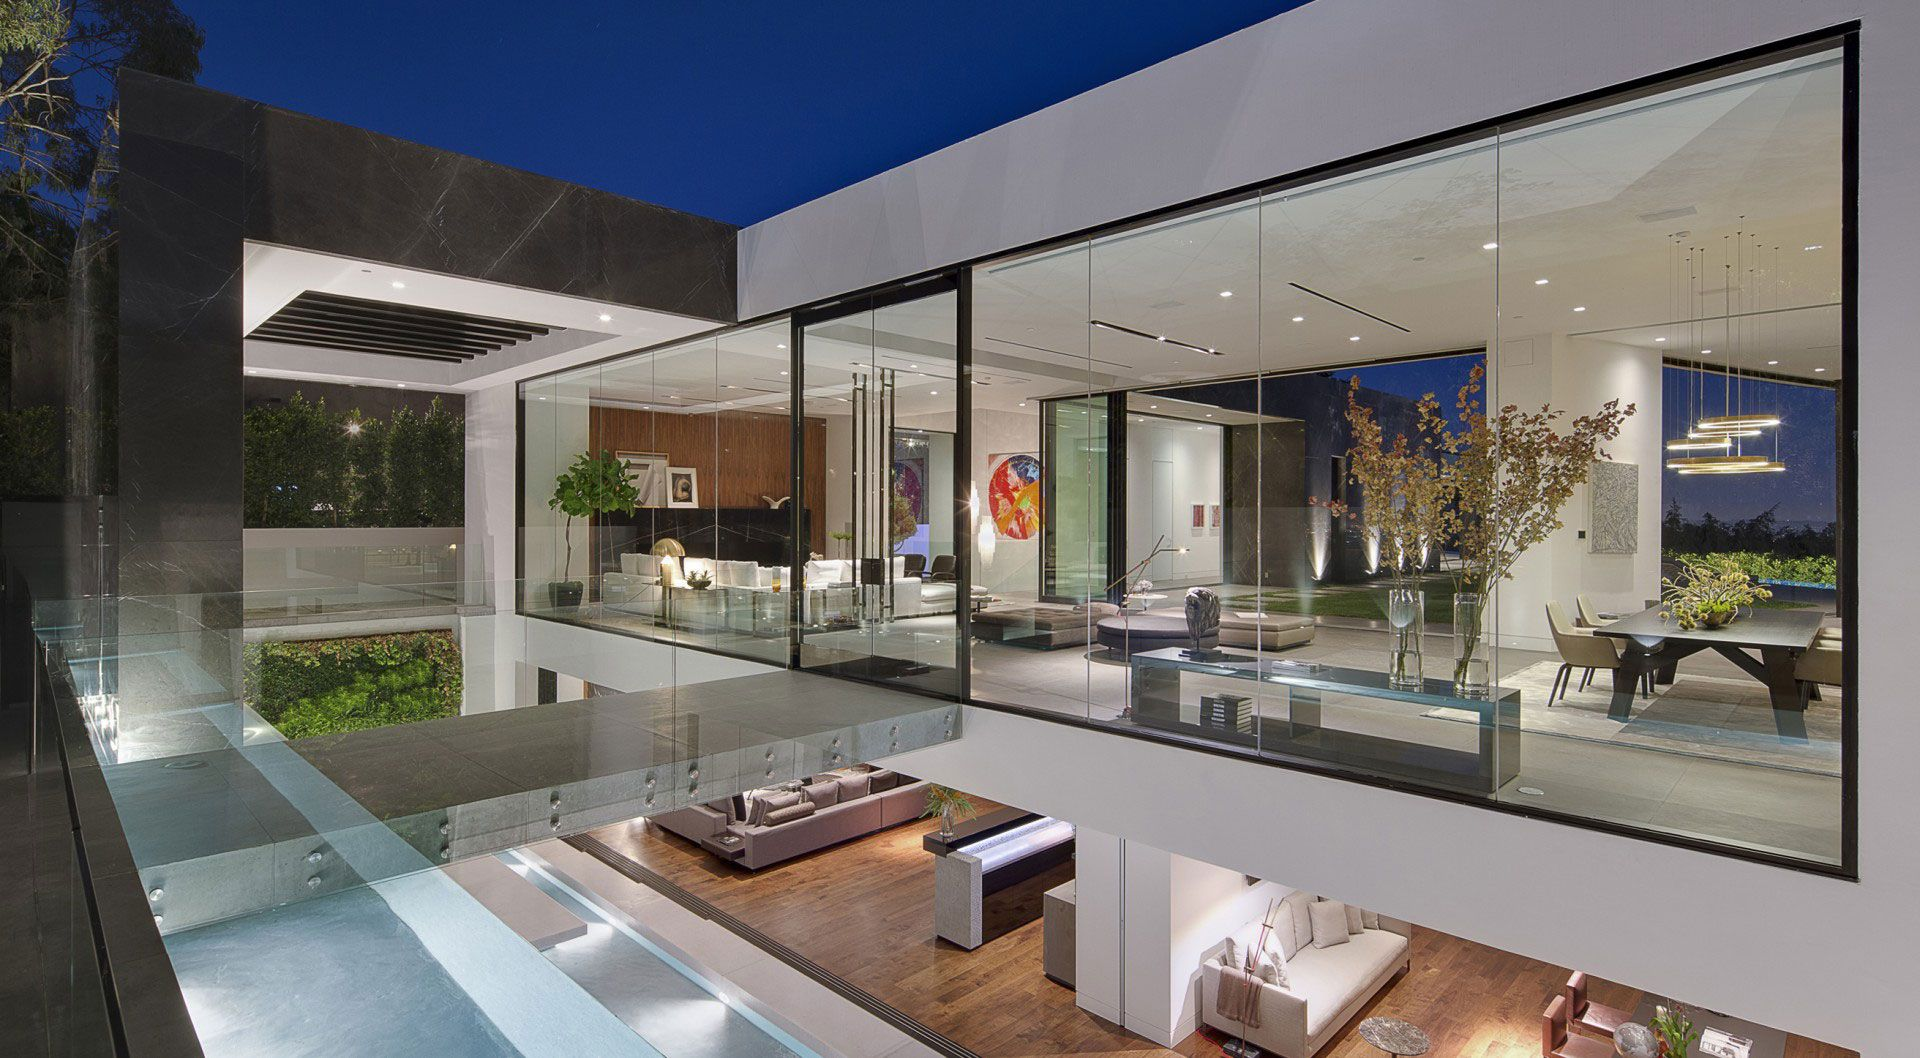 T 1 residence by mcclean design caandesign for Home design los angeles